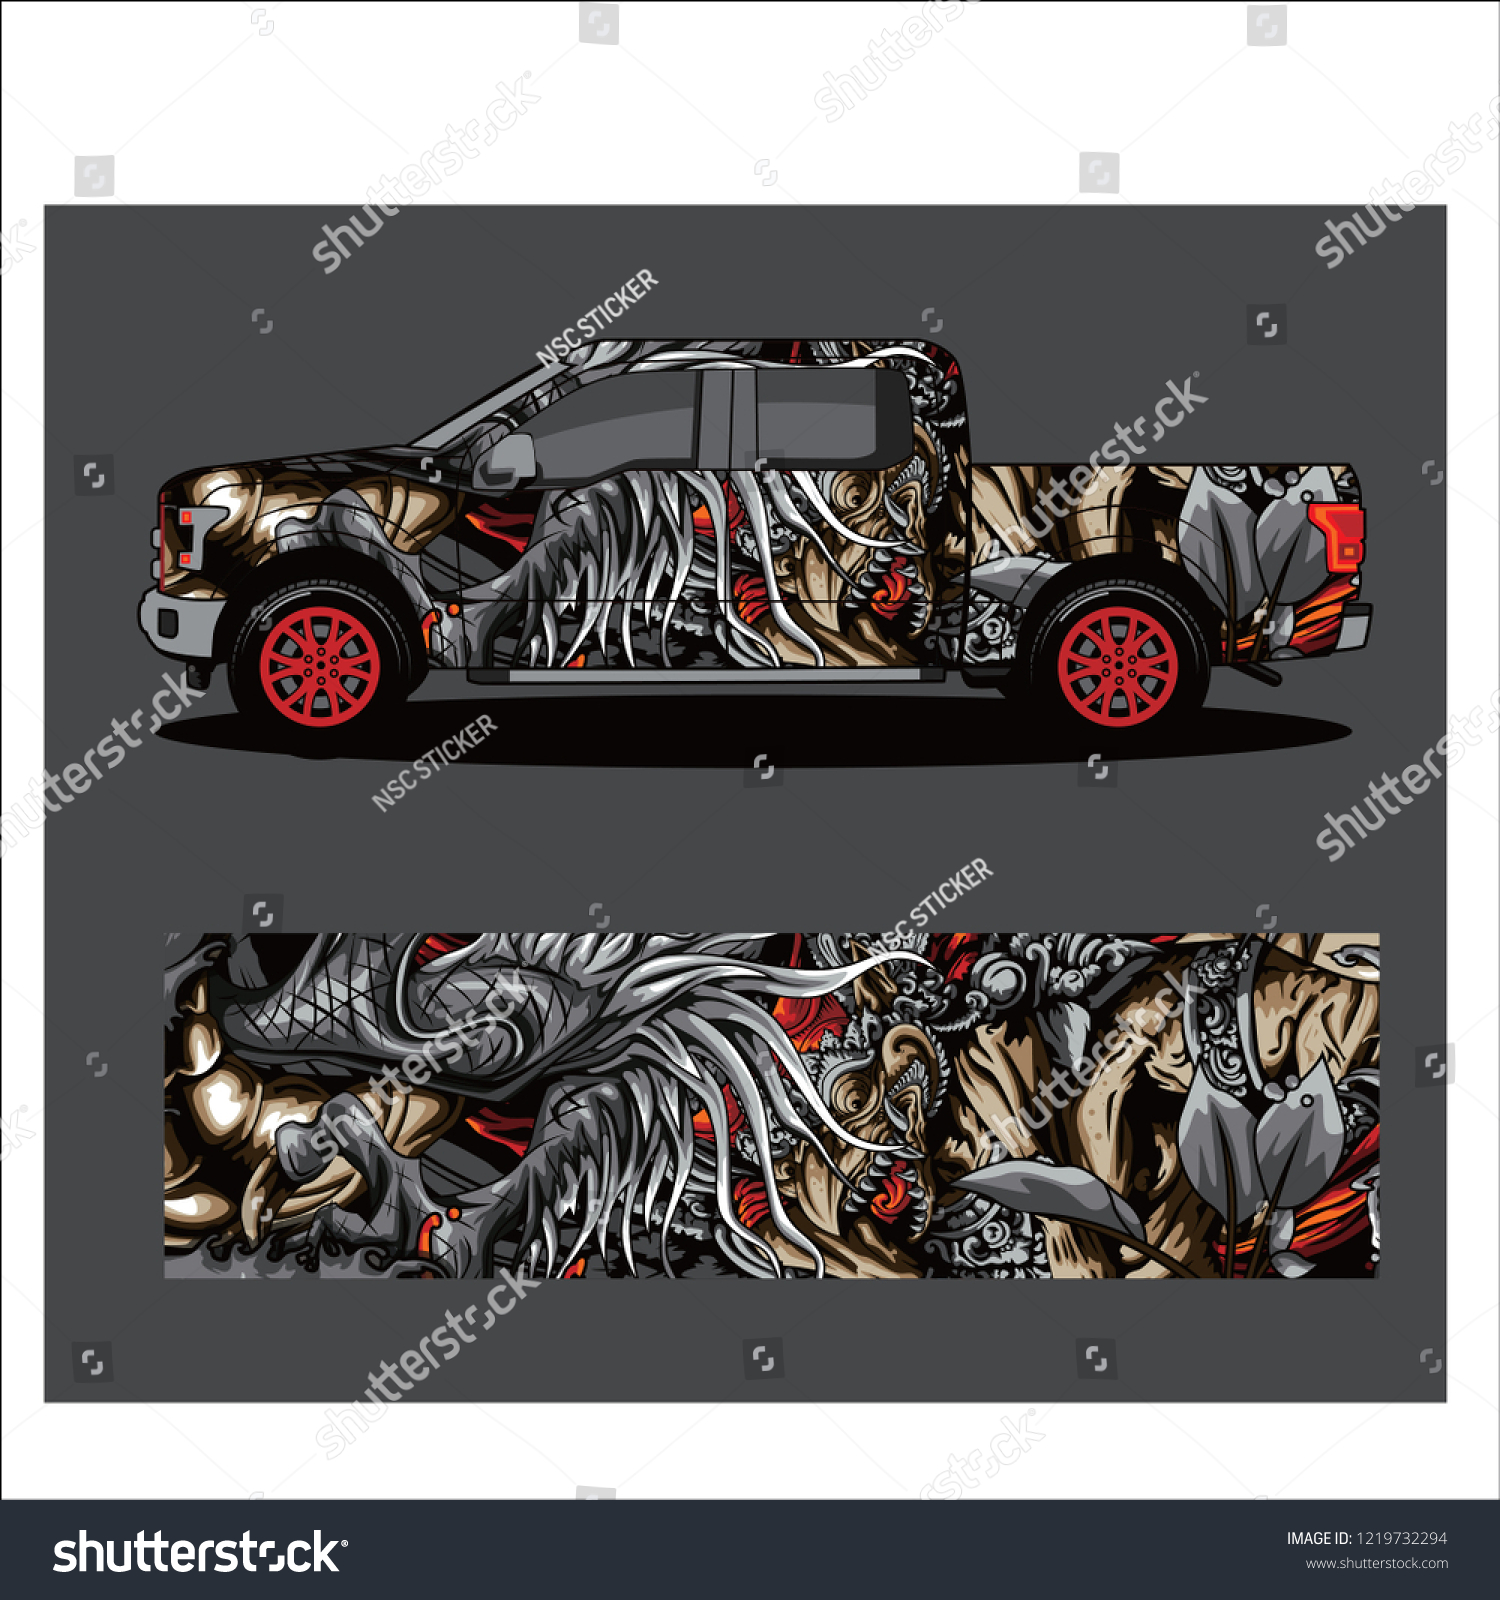 Car decal vector dragon japanese abstract racing designs for vehicle sticker vinyl wrap